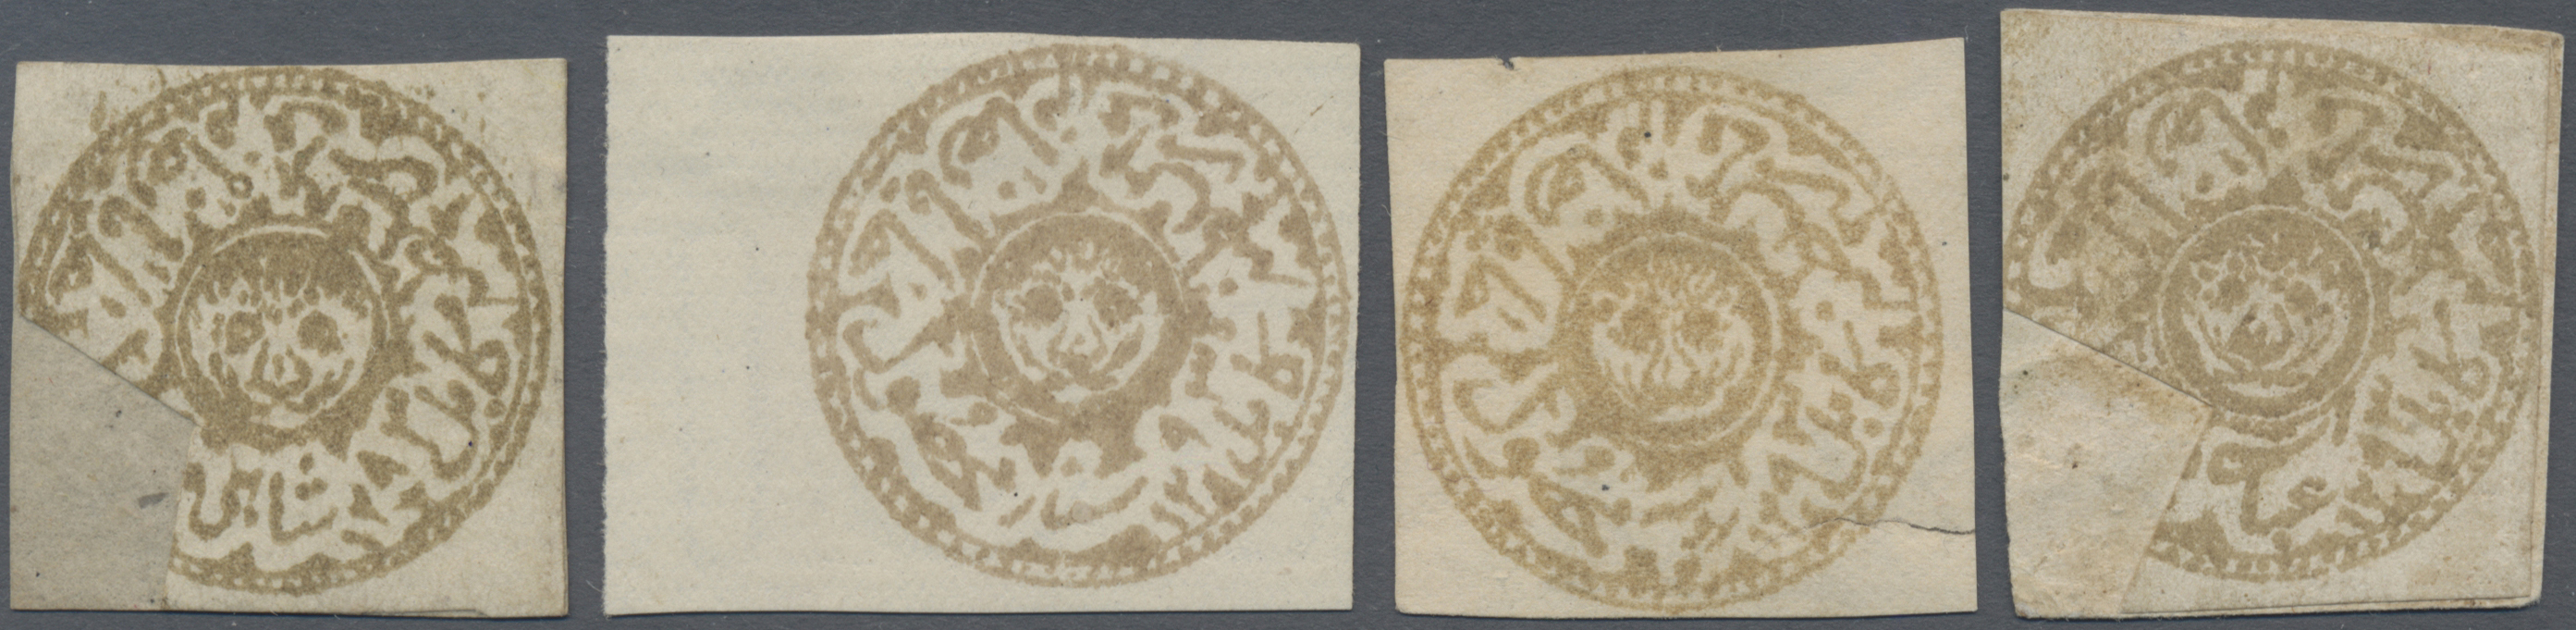 Lot 02016 - Afghanistan  -  Auktionshaus Christoph Gärtner GmbH & Co. KG 51th Auction - Day 2